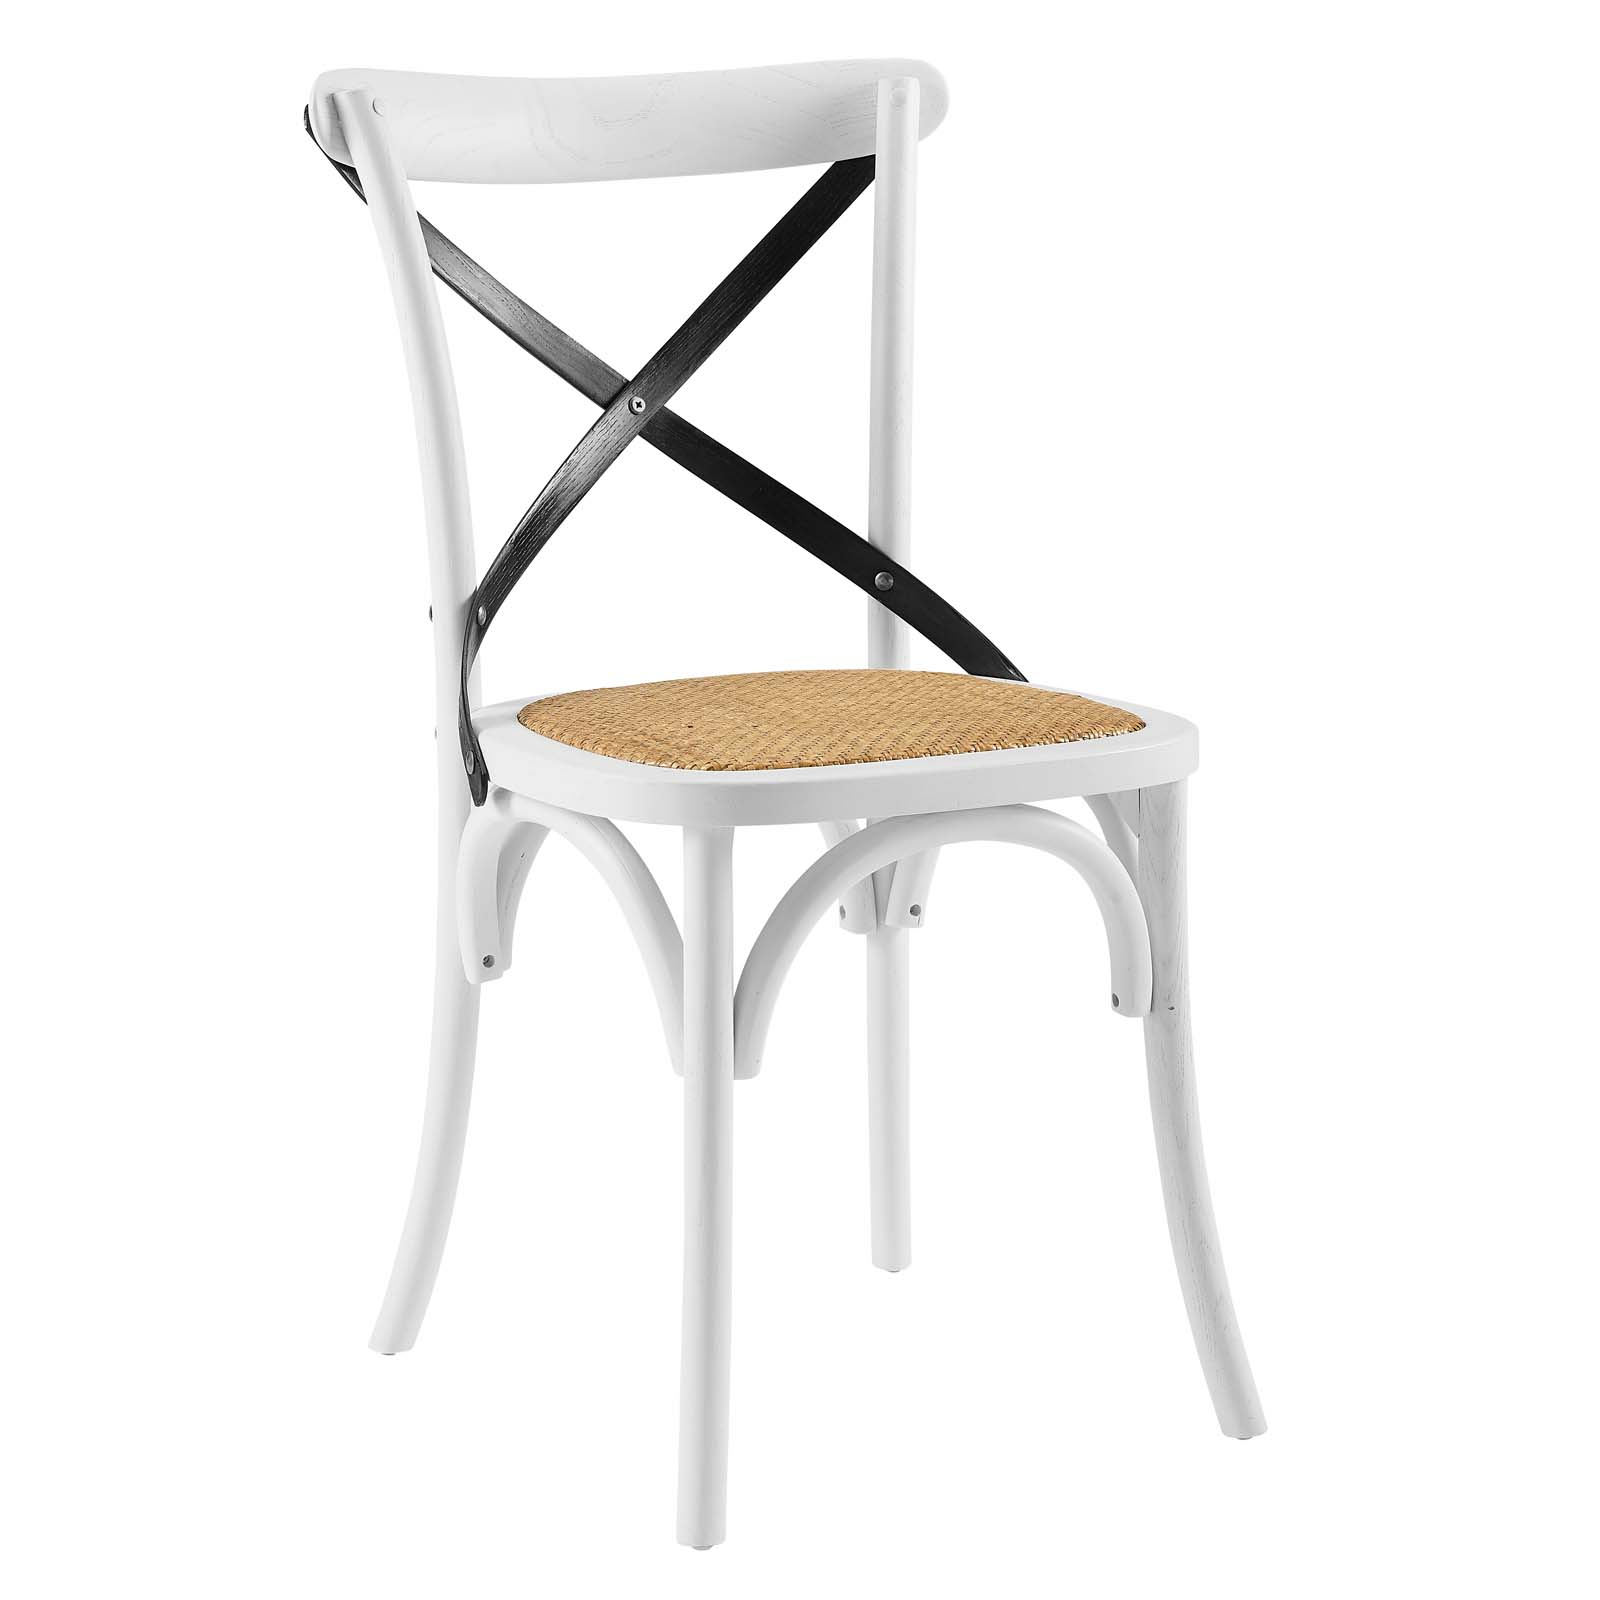 Gear Dining Side Chair White Black EEI-1541-WHI-BLK